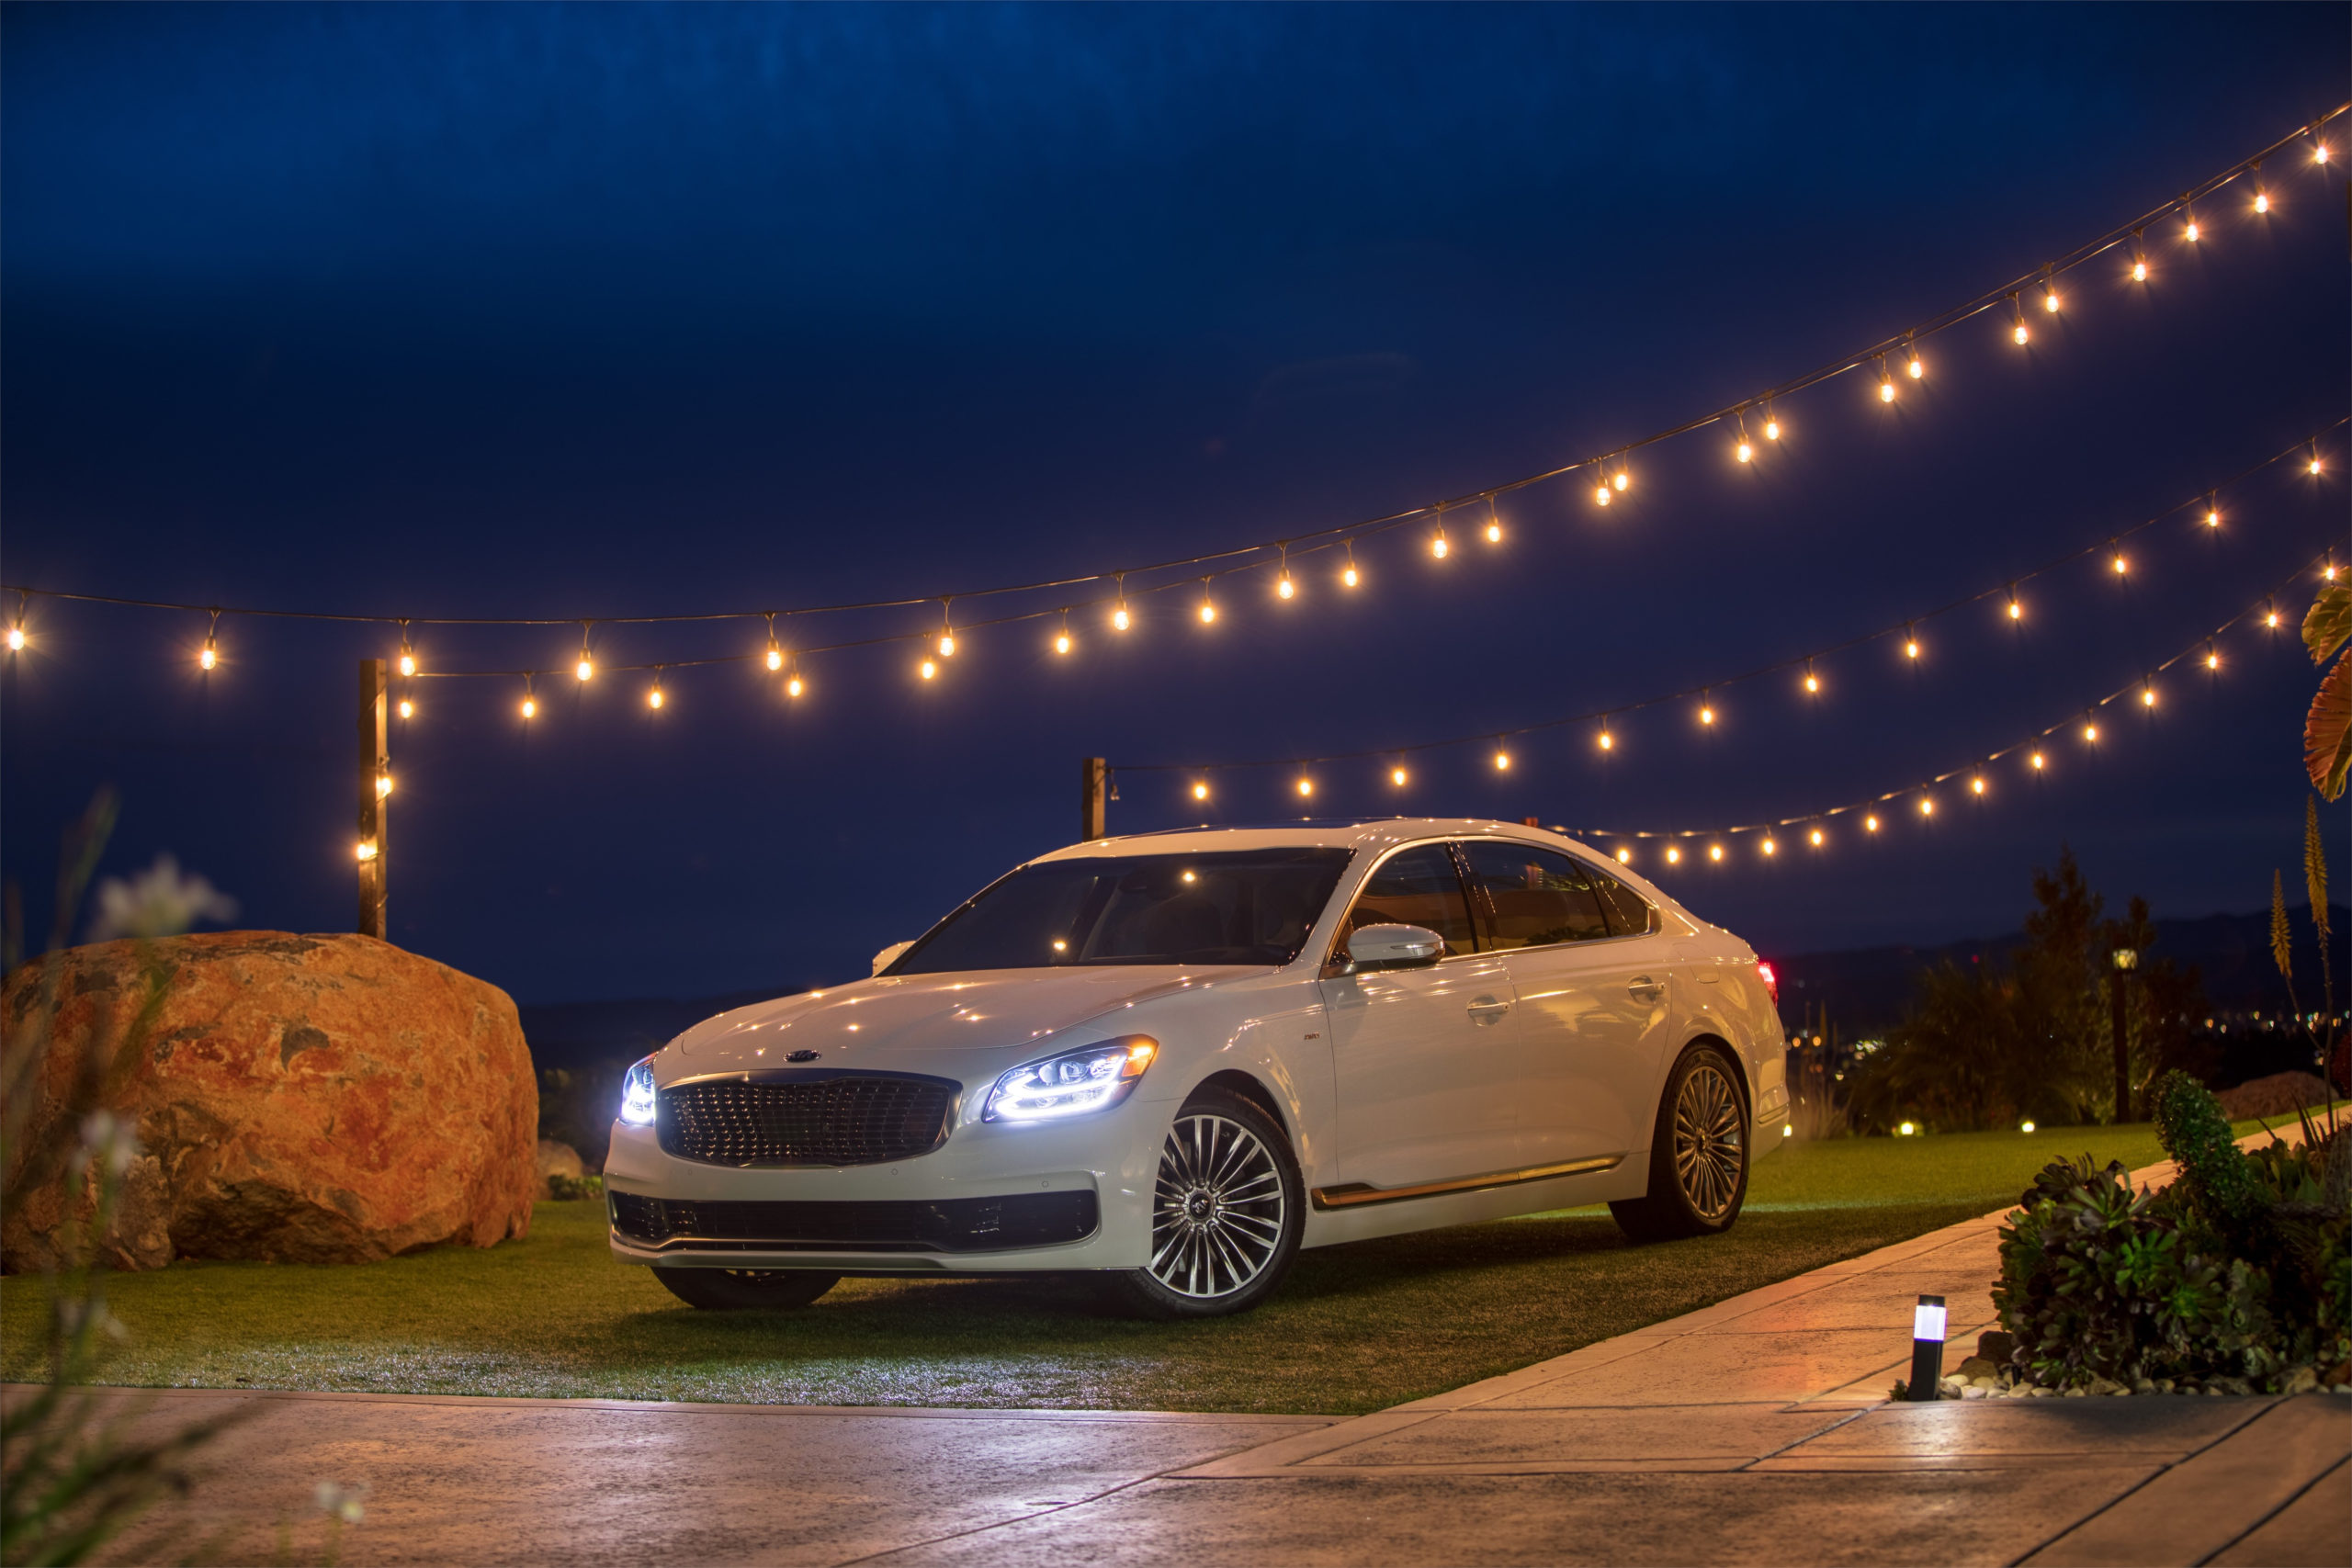 All-New Kia K900 Landed In New York - Korean Car Blog - 2022 Kia K900 Road Test Release Date, Color Options